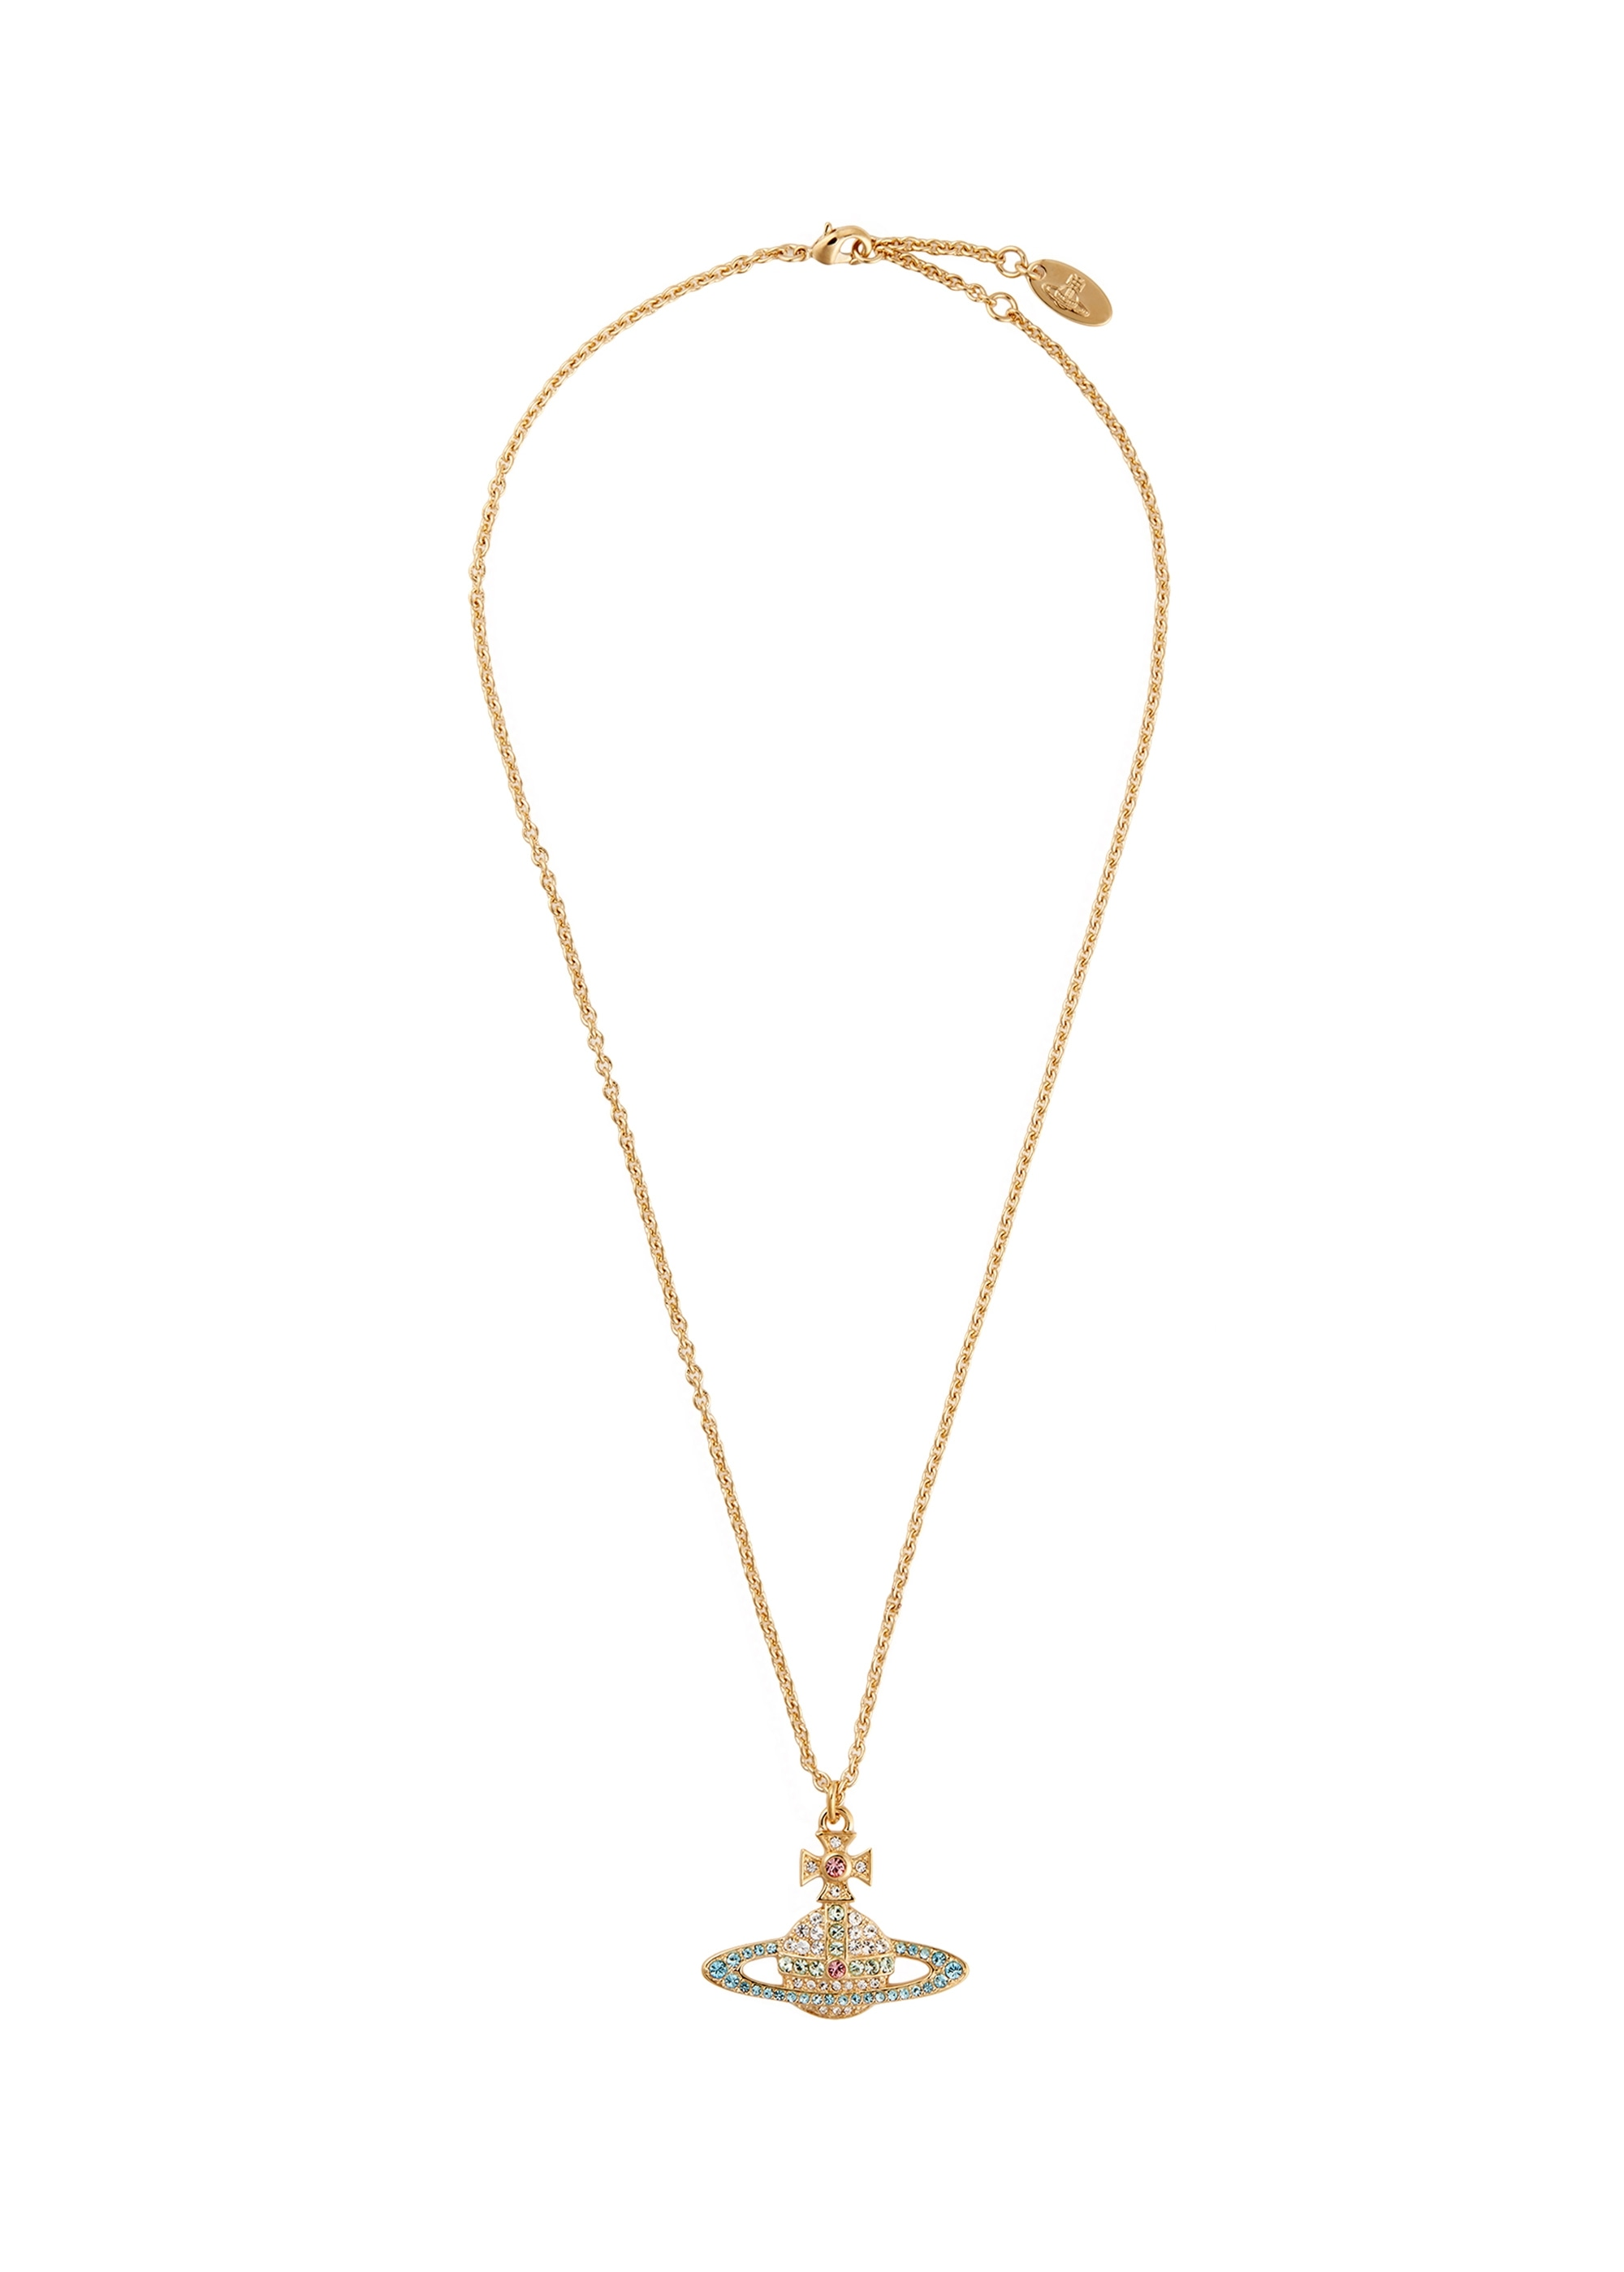 jewellery neclaces necklaces d chains in necklace gold march loop